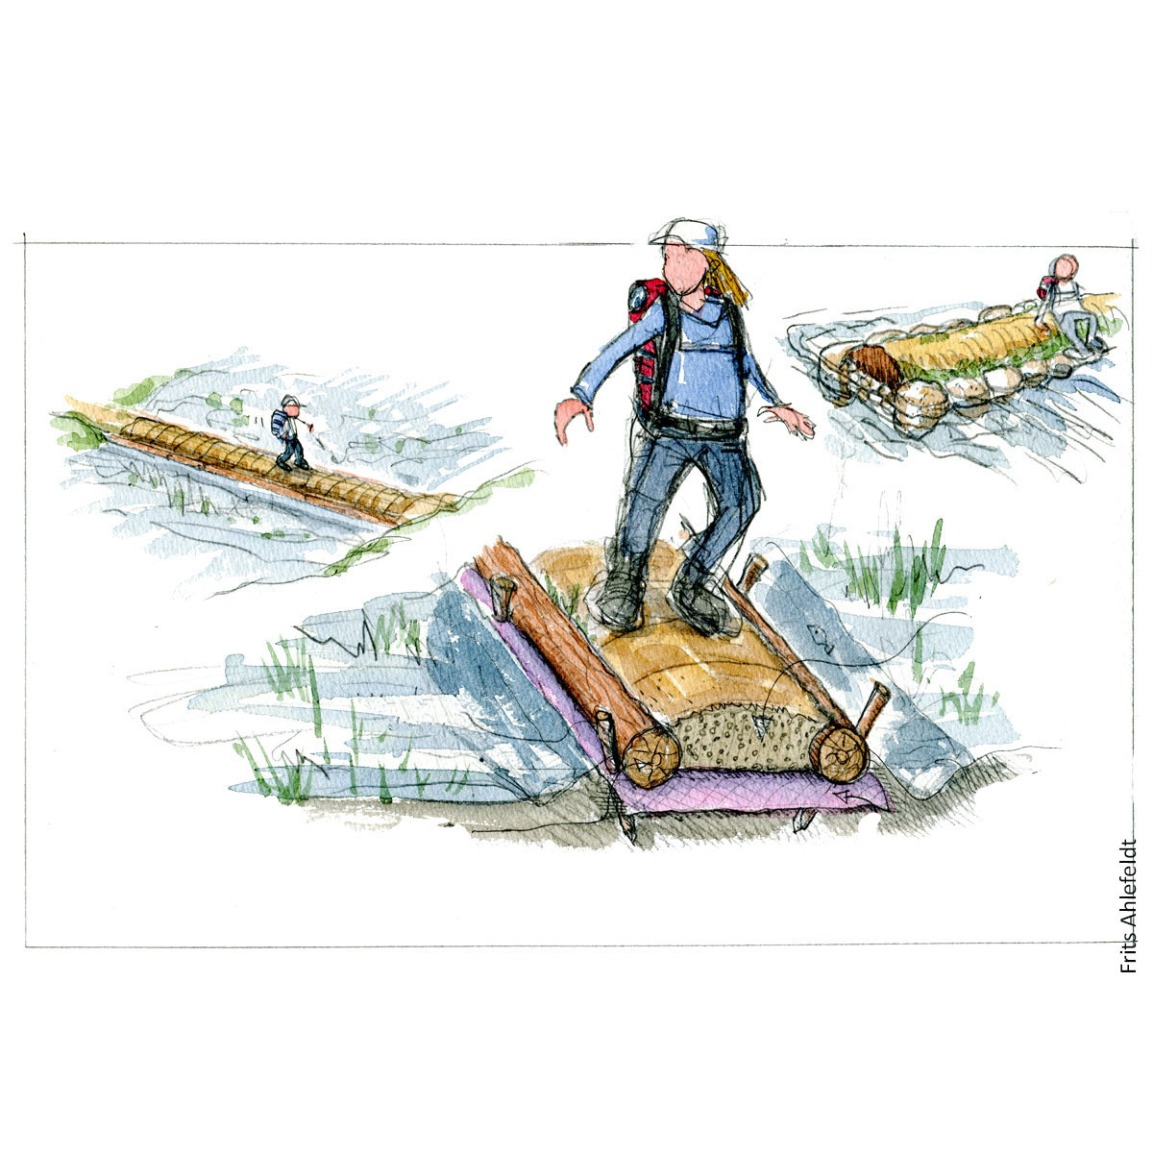 Illustration of a trail over wet area ( turnpike concept. Drawing by Frits Ahlefeldt. Hiking.org